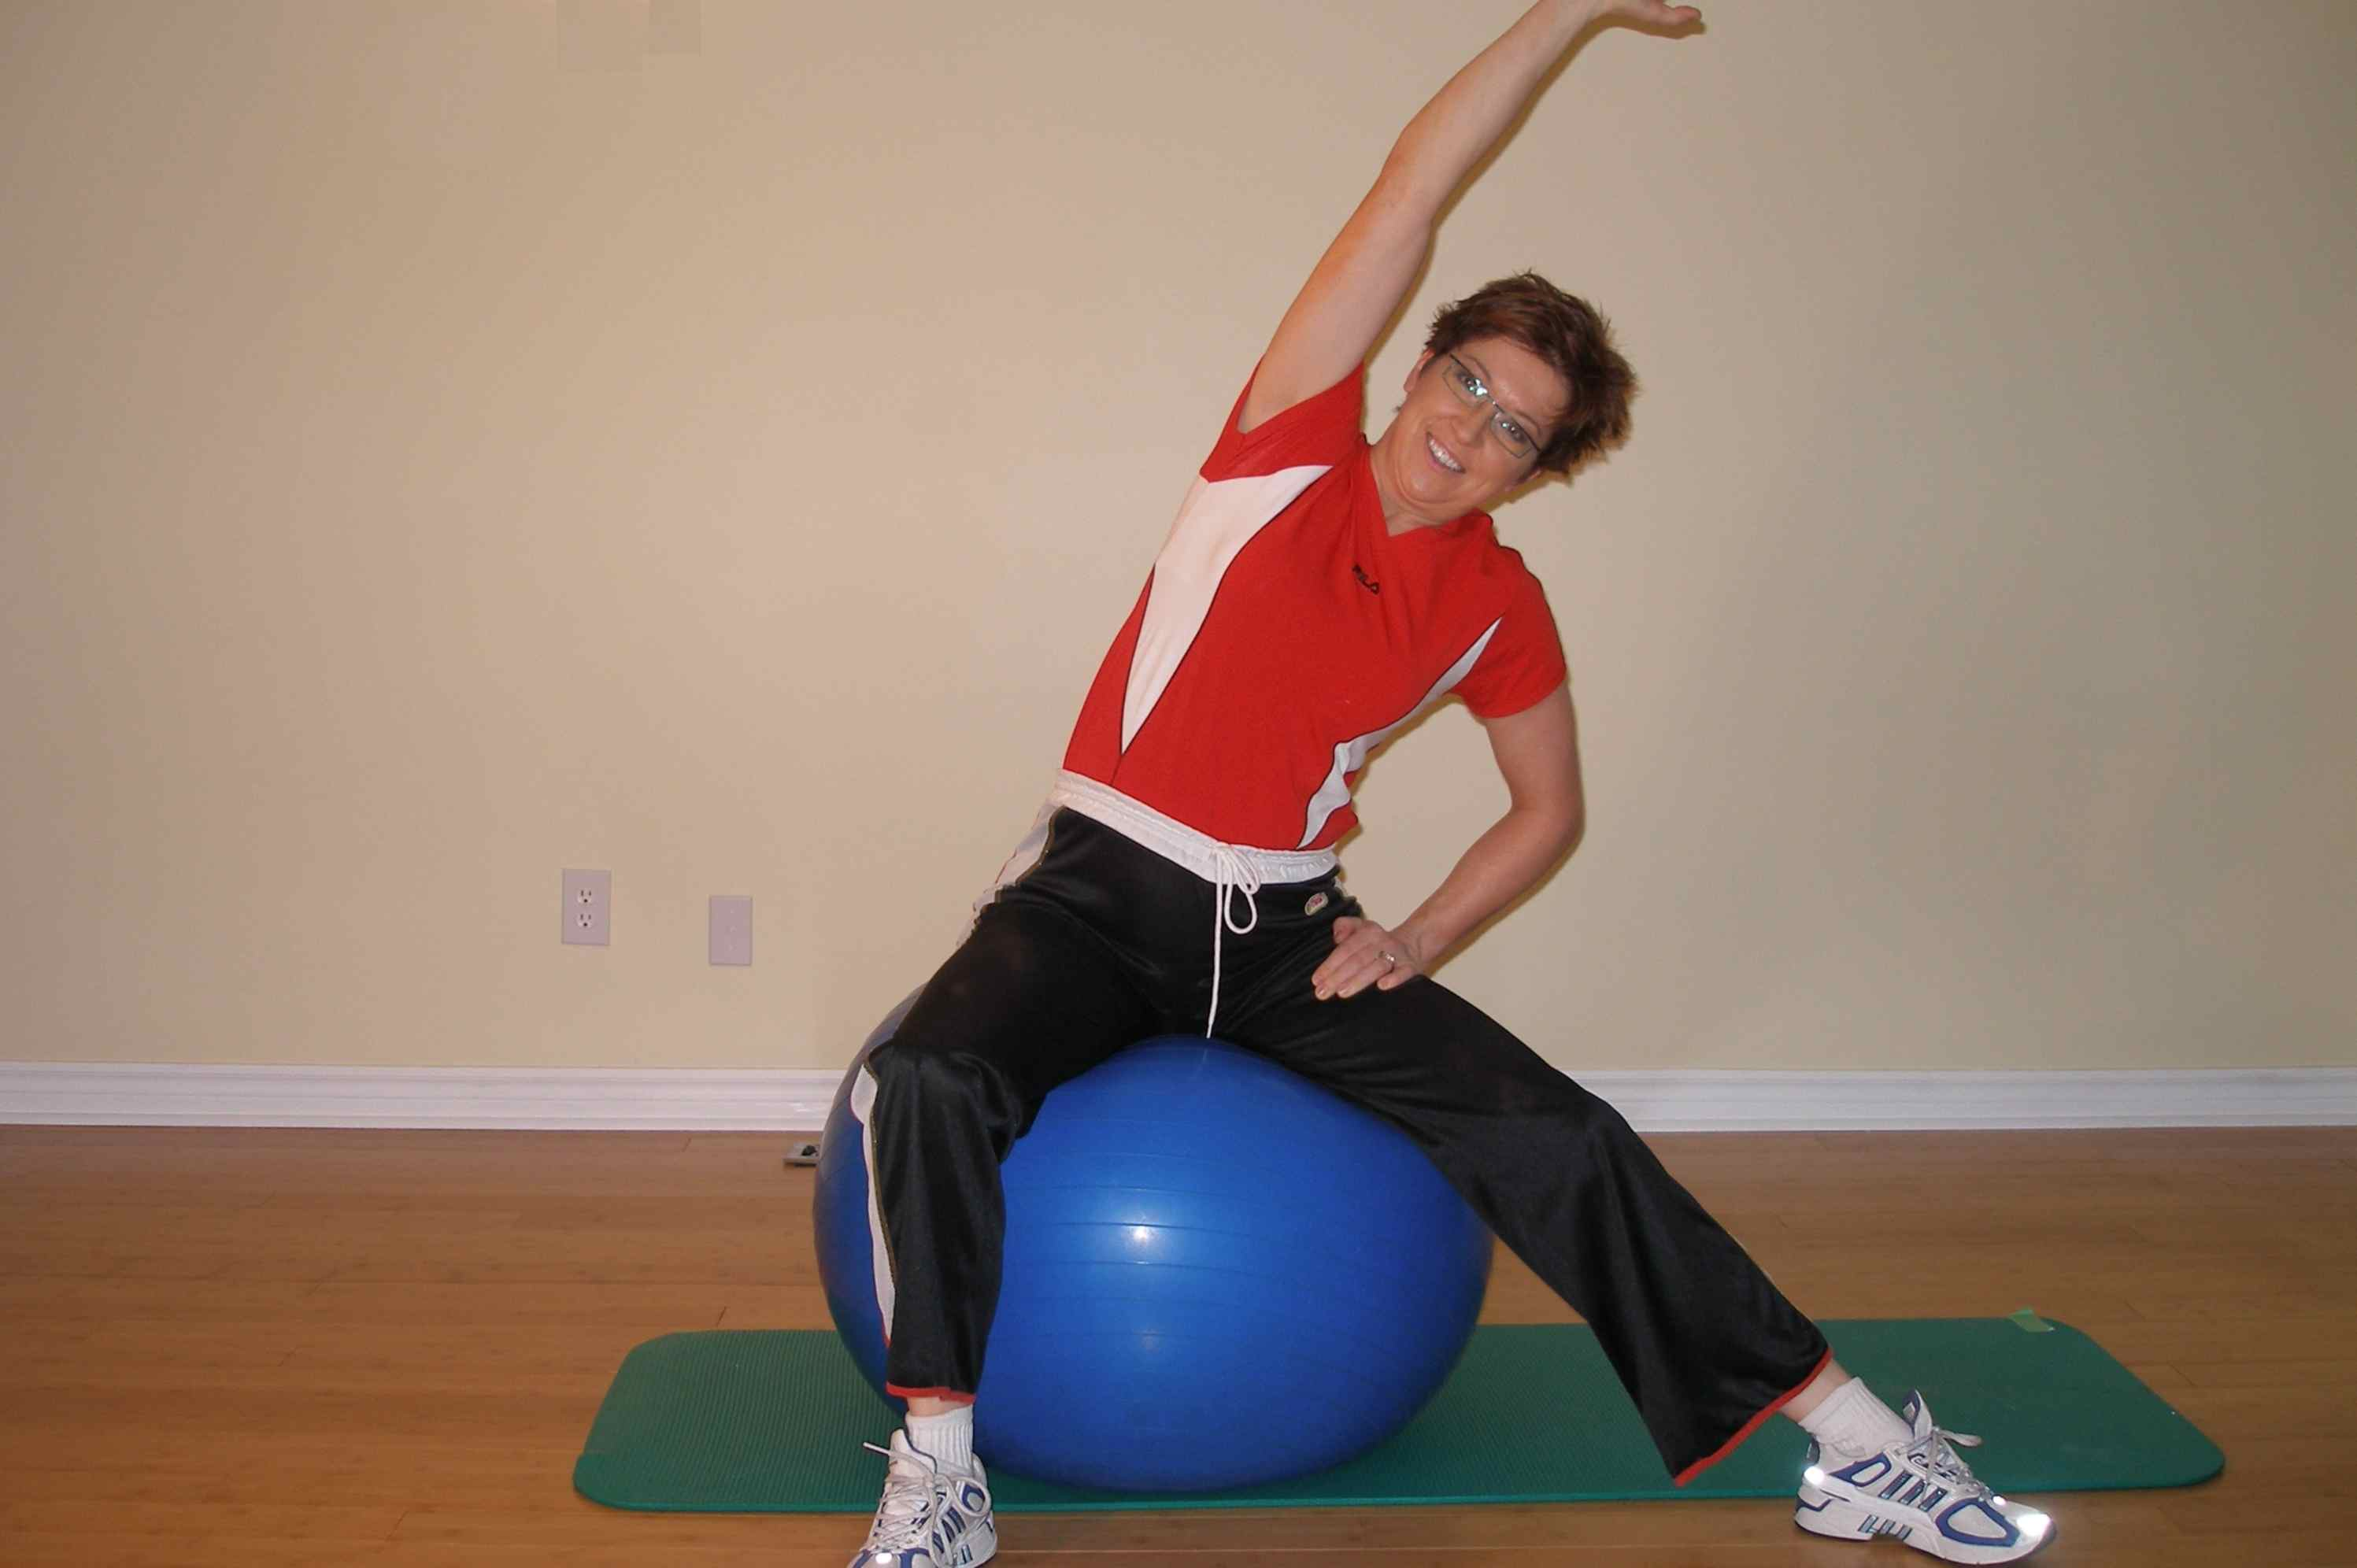 exercise ball stretching side